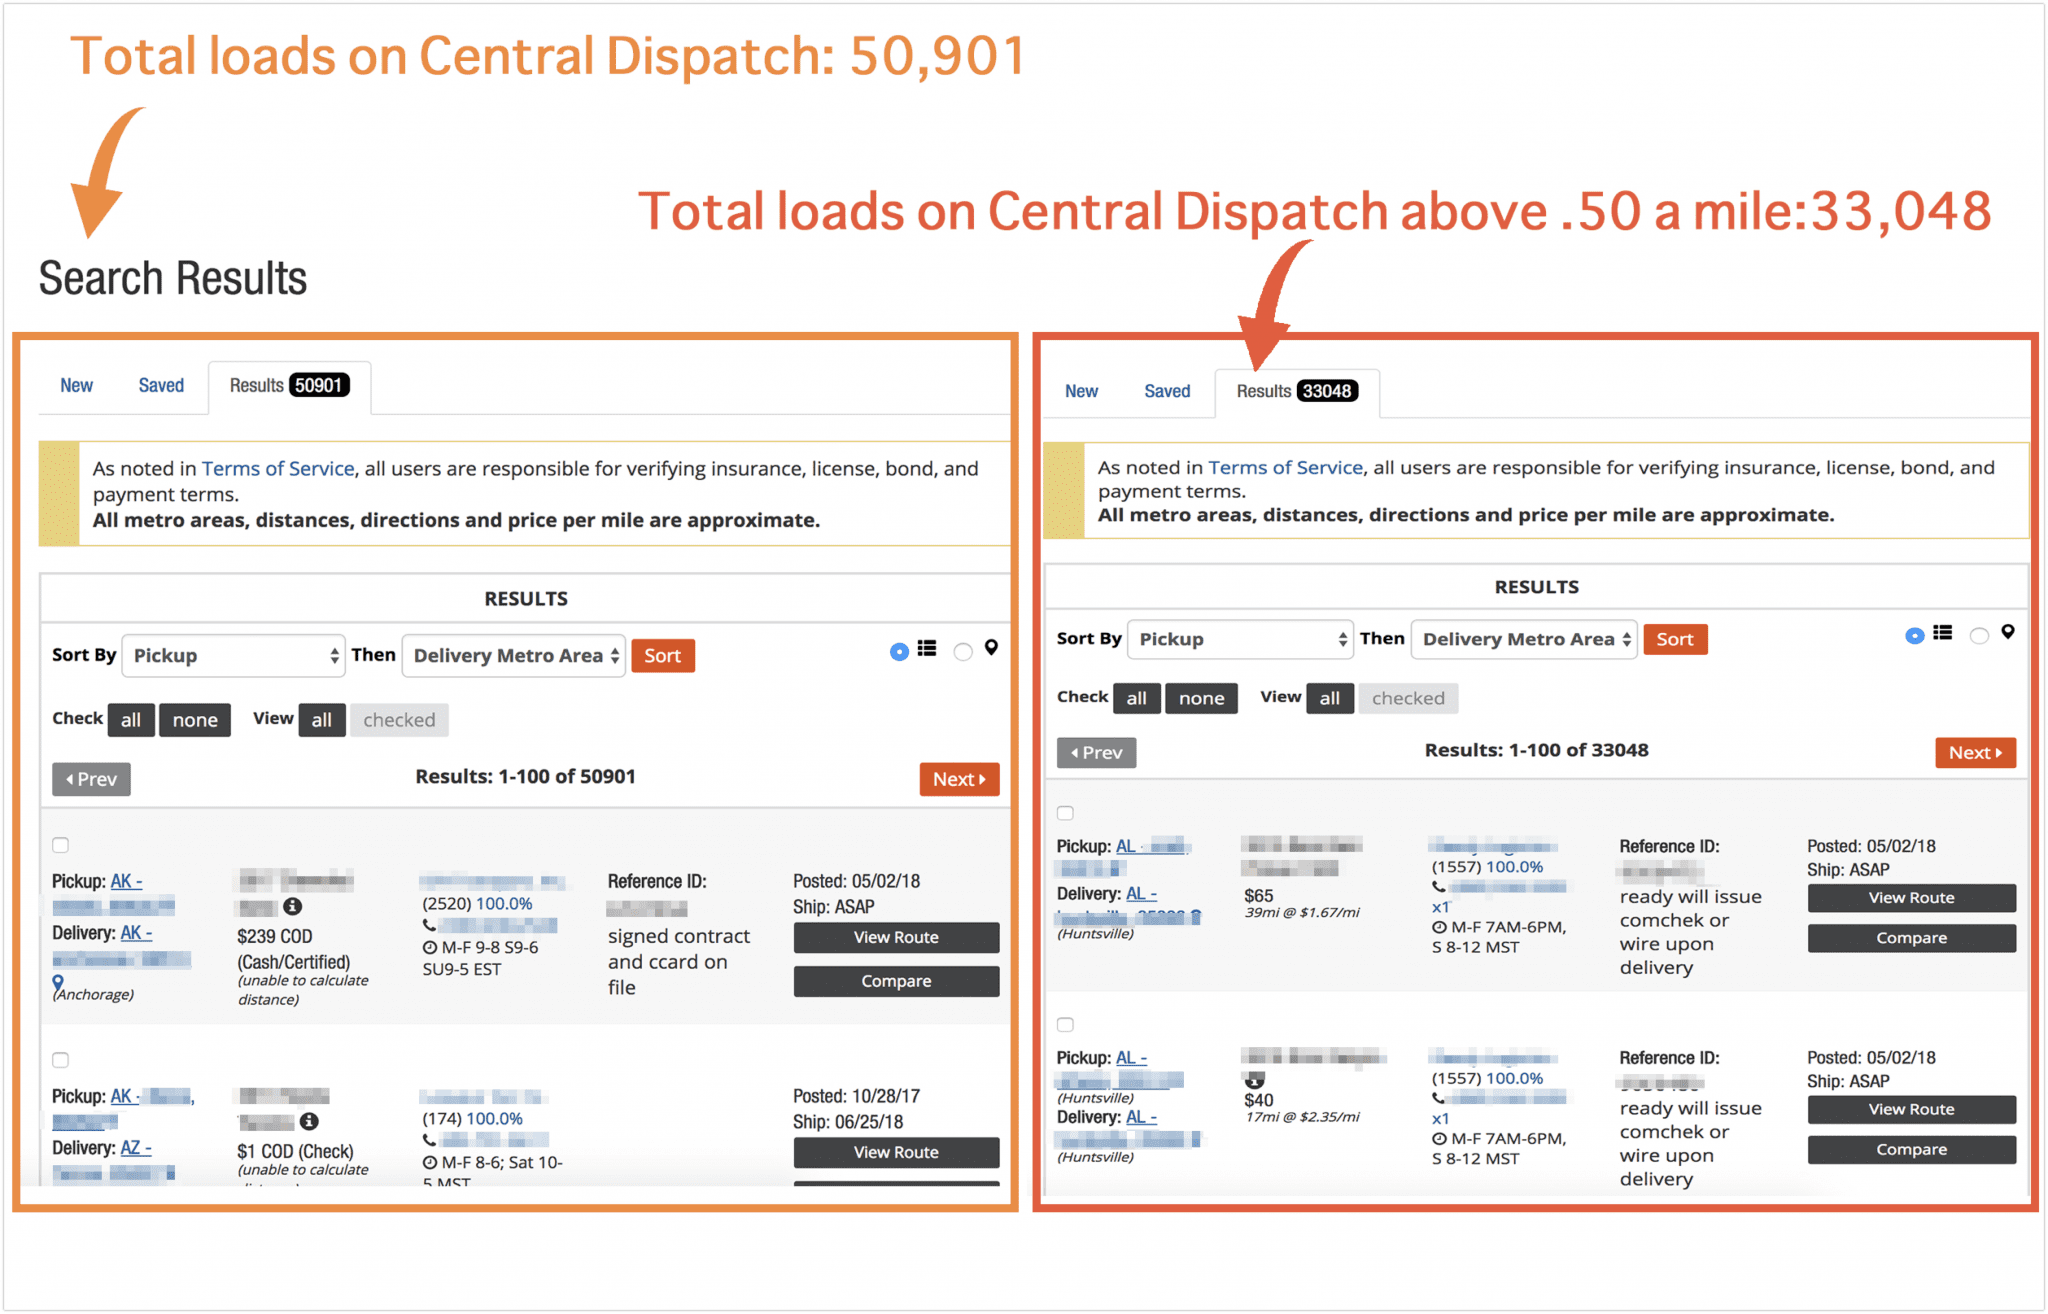 Why are there over 50,000 load offers on Central Dispatch?